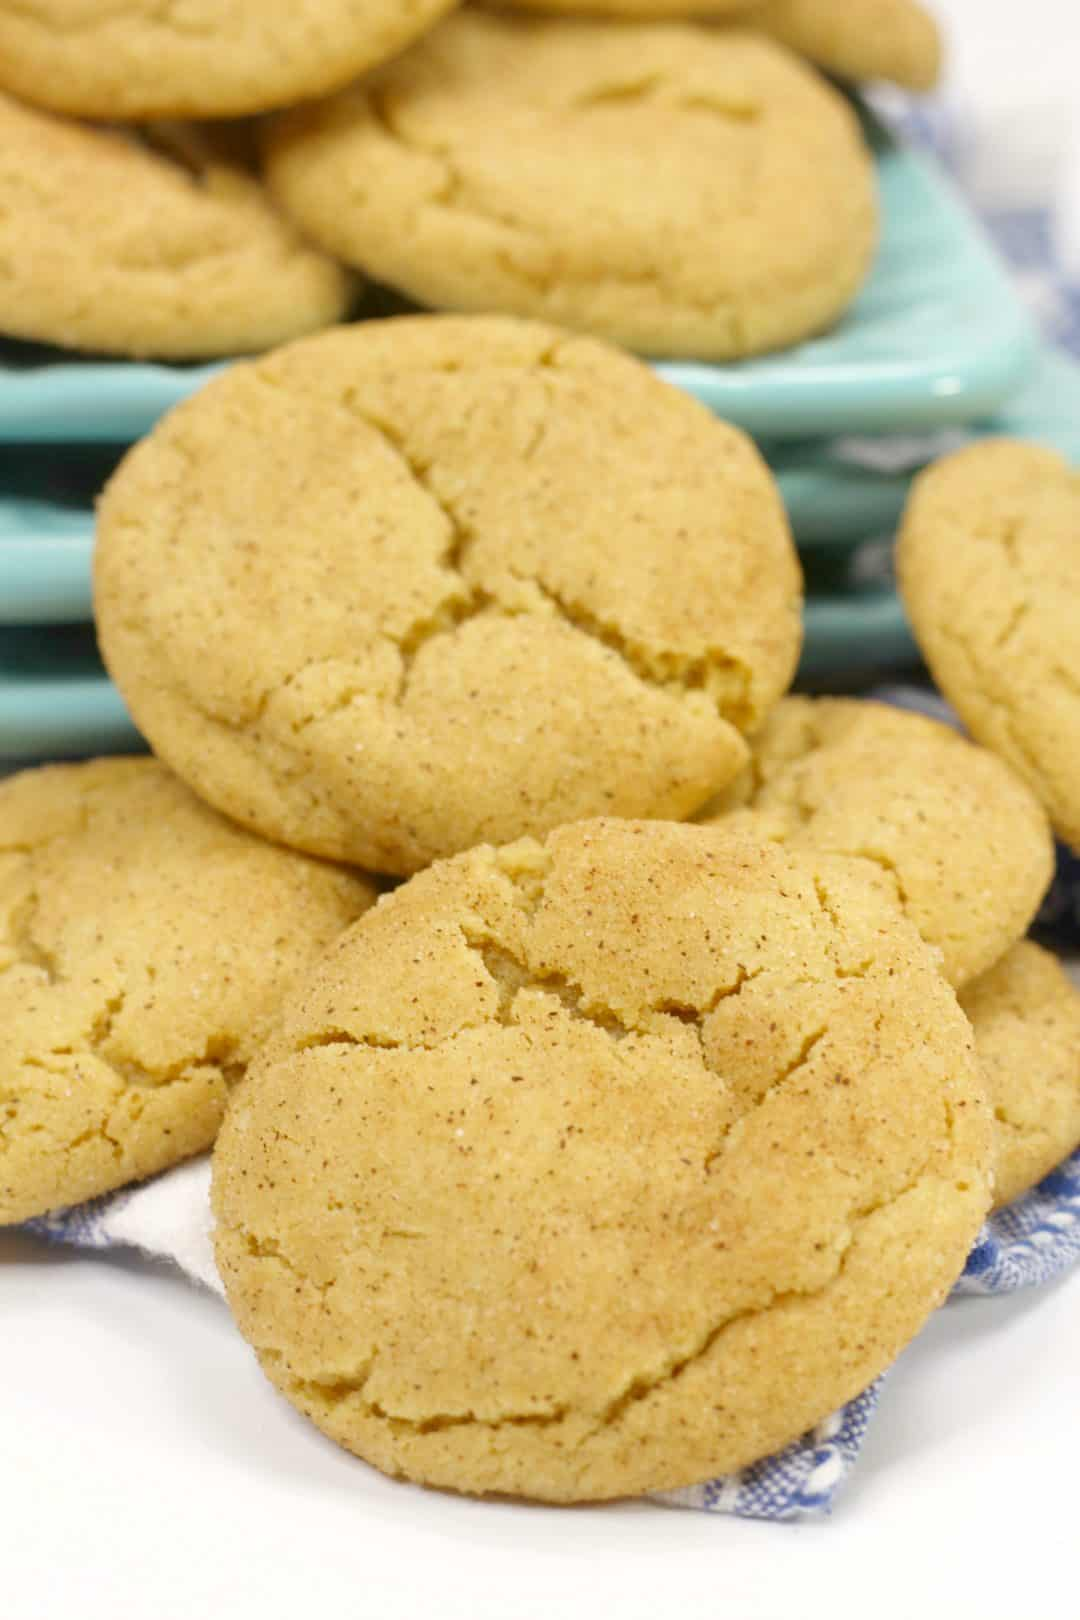 Stacks of Easy snickerdoodle cookies laying on a white surface next to teal plates